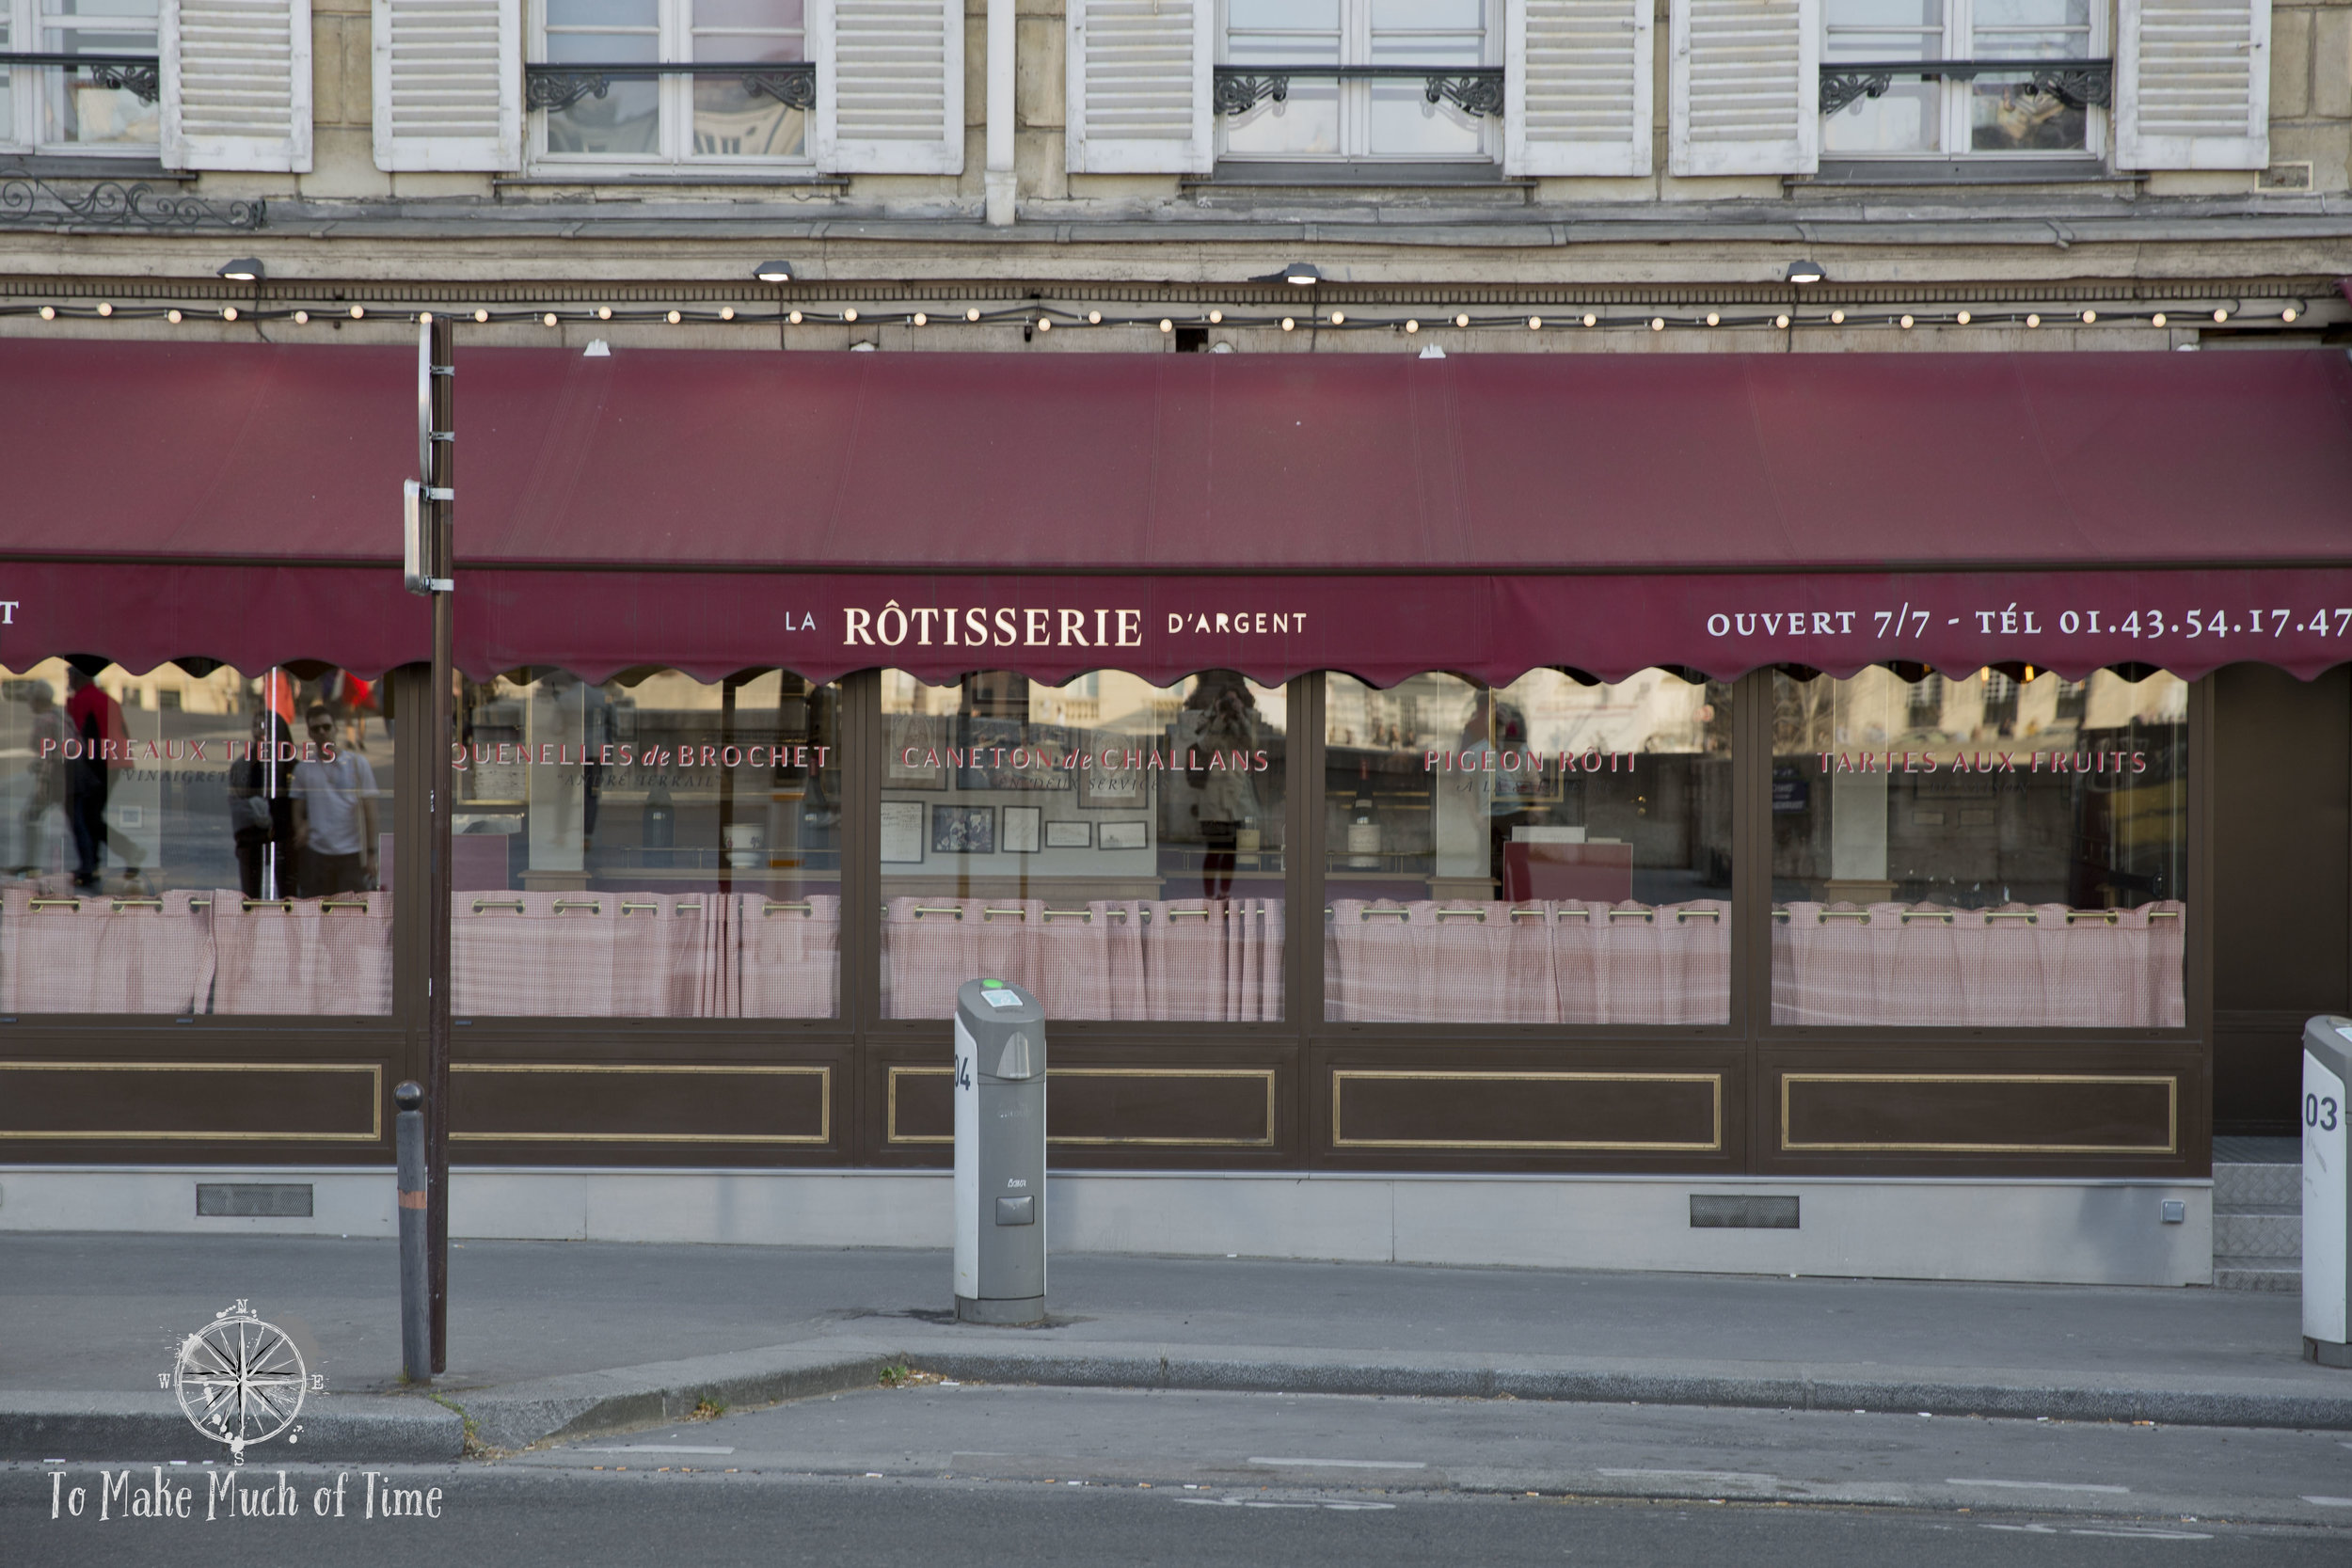 La Rotisserie D'argent | French Restaurant | To Make Much of Time